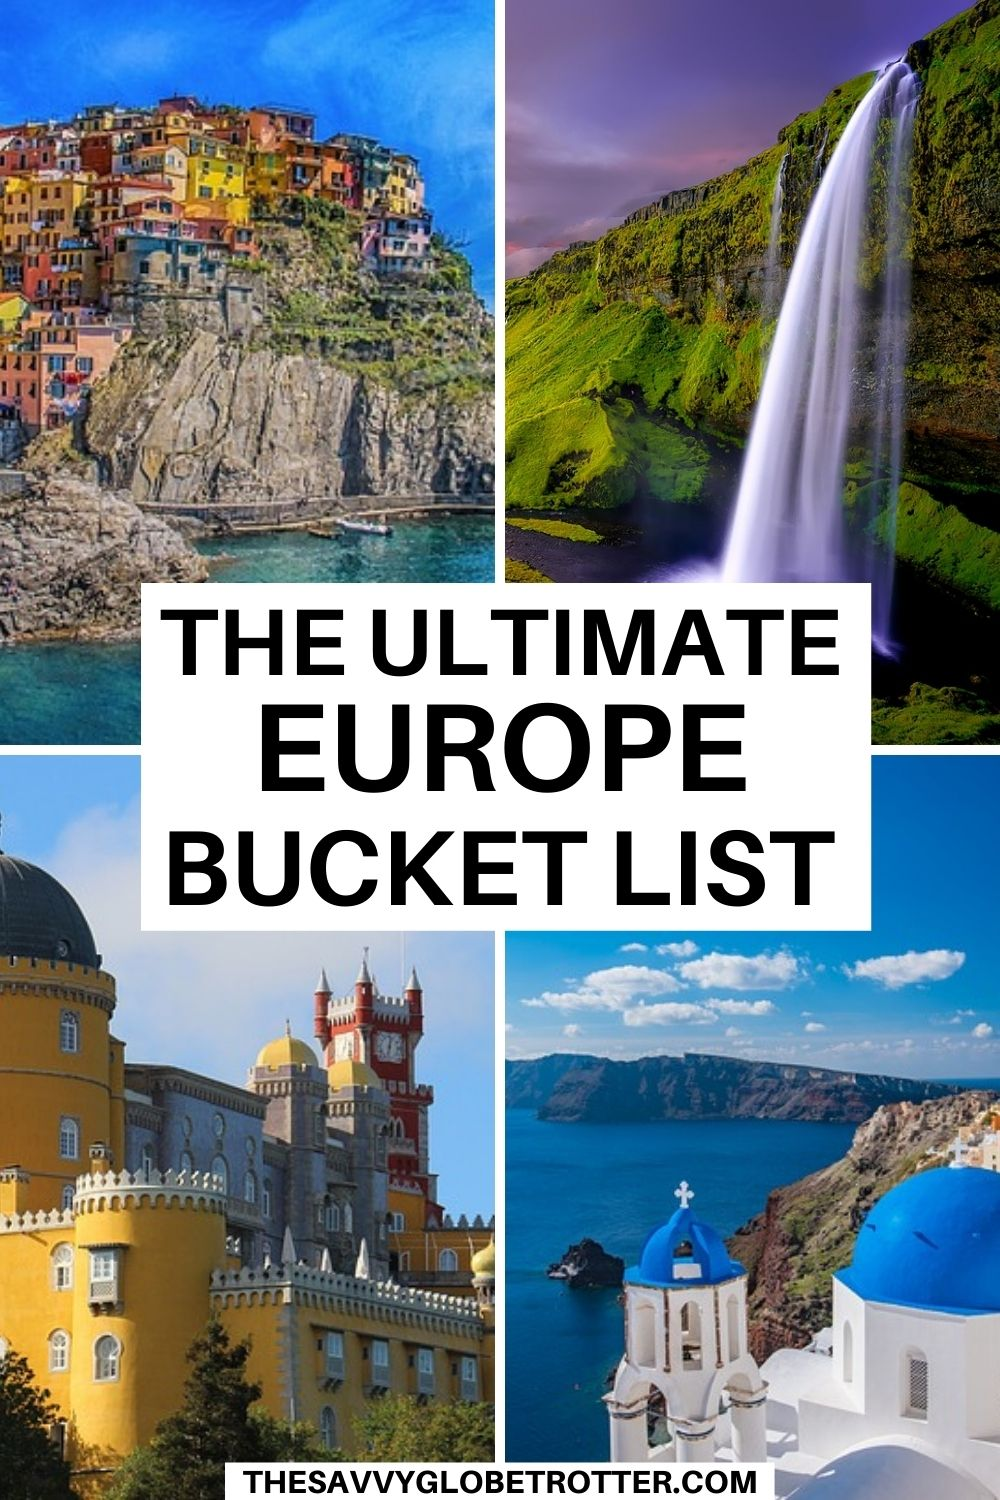 The best things to do in Europe that need to be on your travel bucket list! #europe #bucketlist | Europe travel | trip to Europe | travel through Europe | Europe trip | Europe places to visit | Europe vacation | Europe travel destinations | Europe travel guide | European bucket list challenge